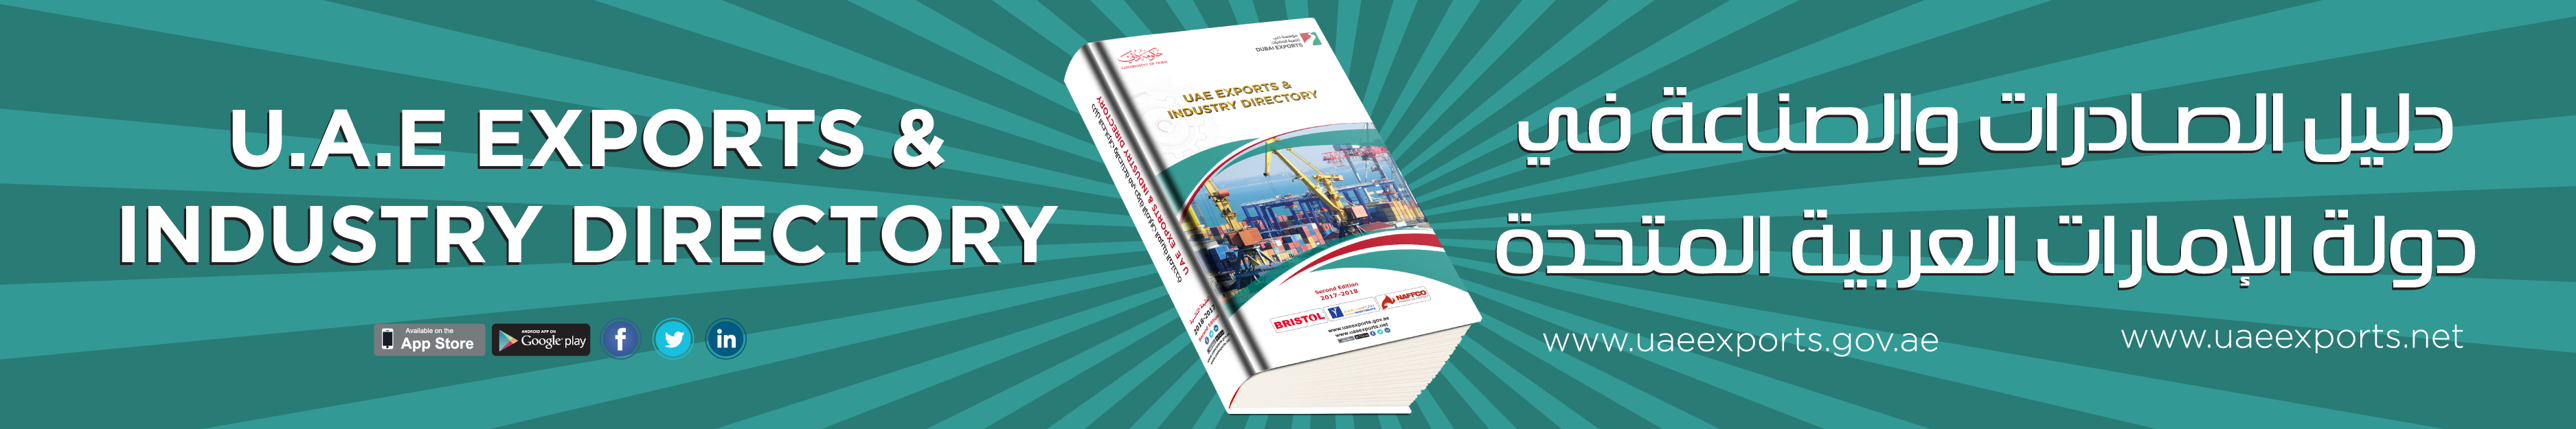 UAE Exports Directory: UAE Exports & Industry Directory